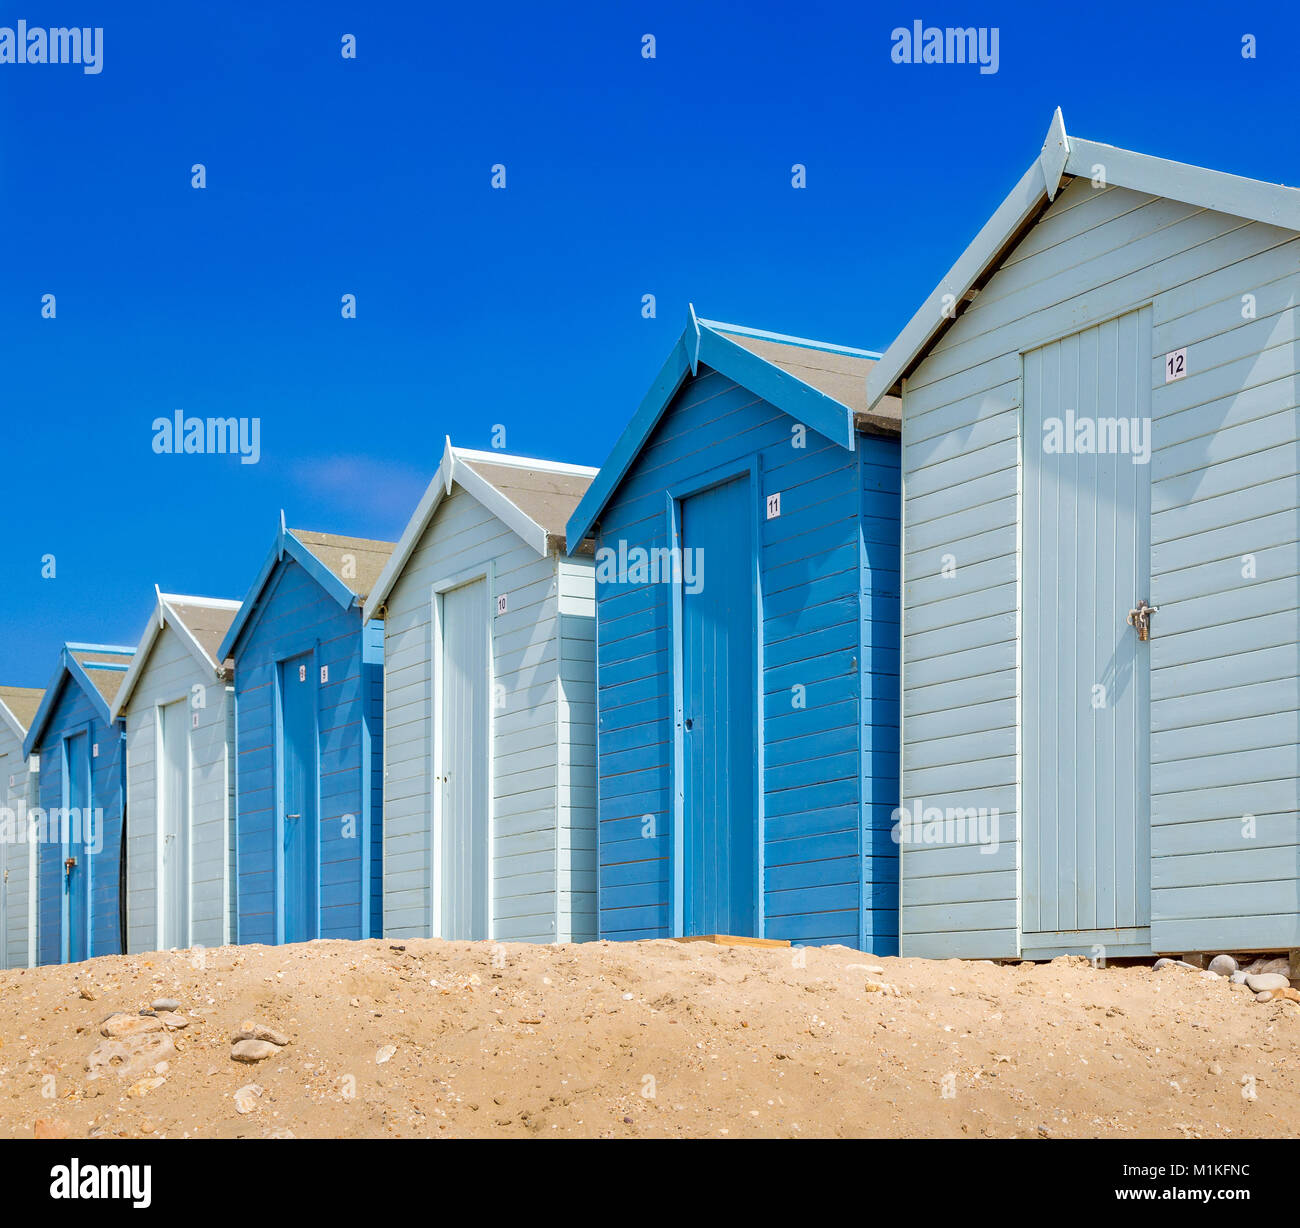 Beach huts in shades of blue on the beach at Charmouth in Dorset UK - Stock Image